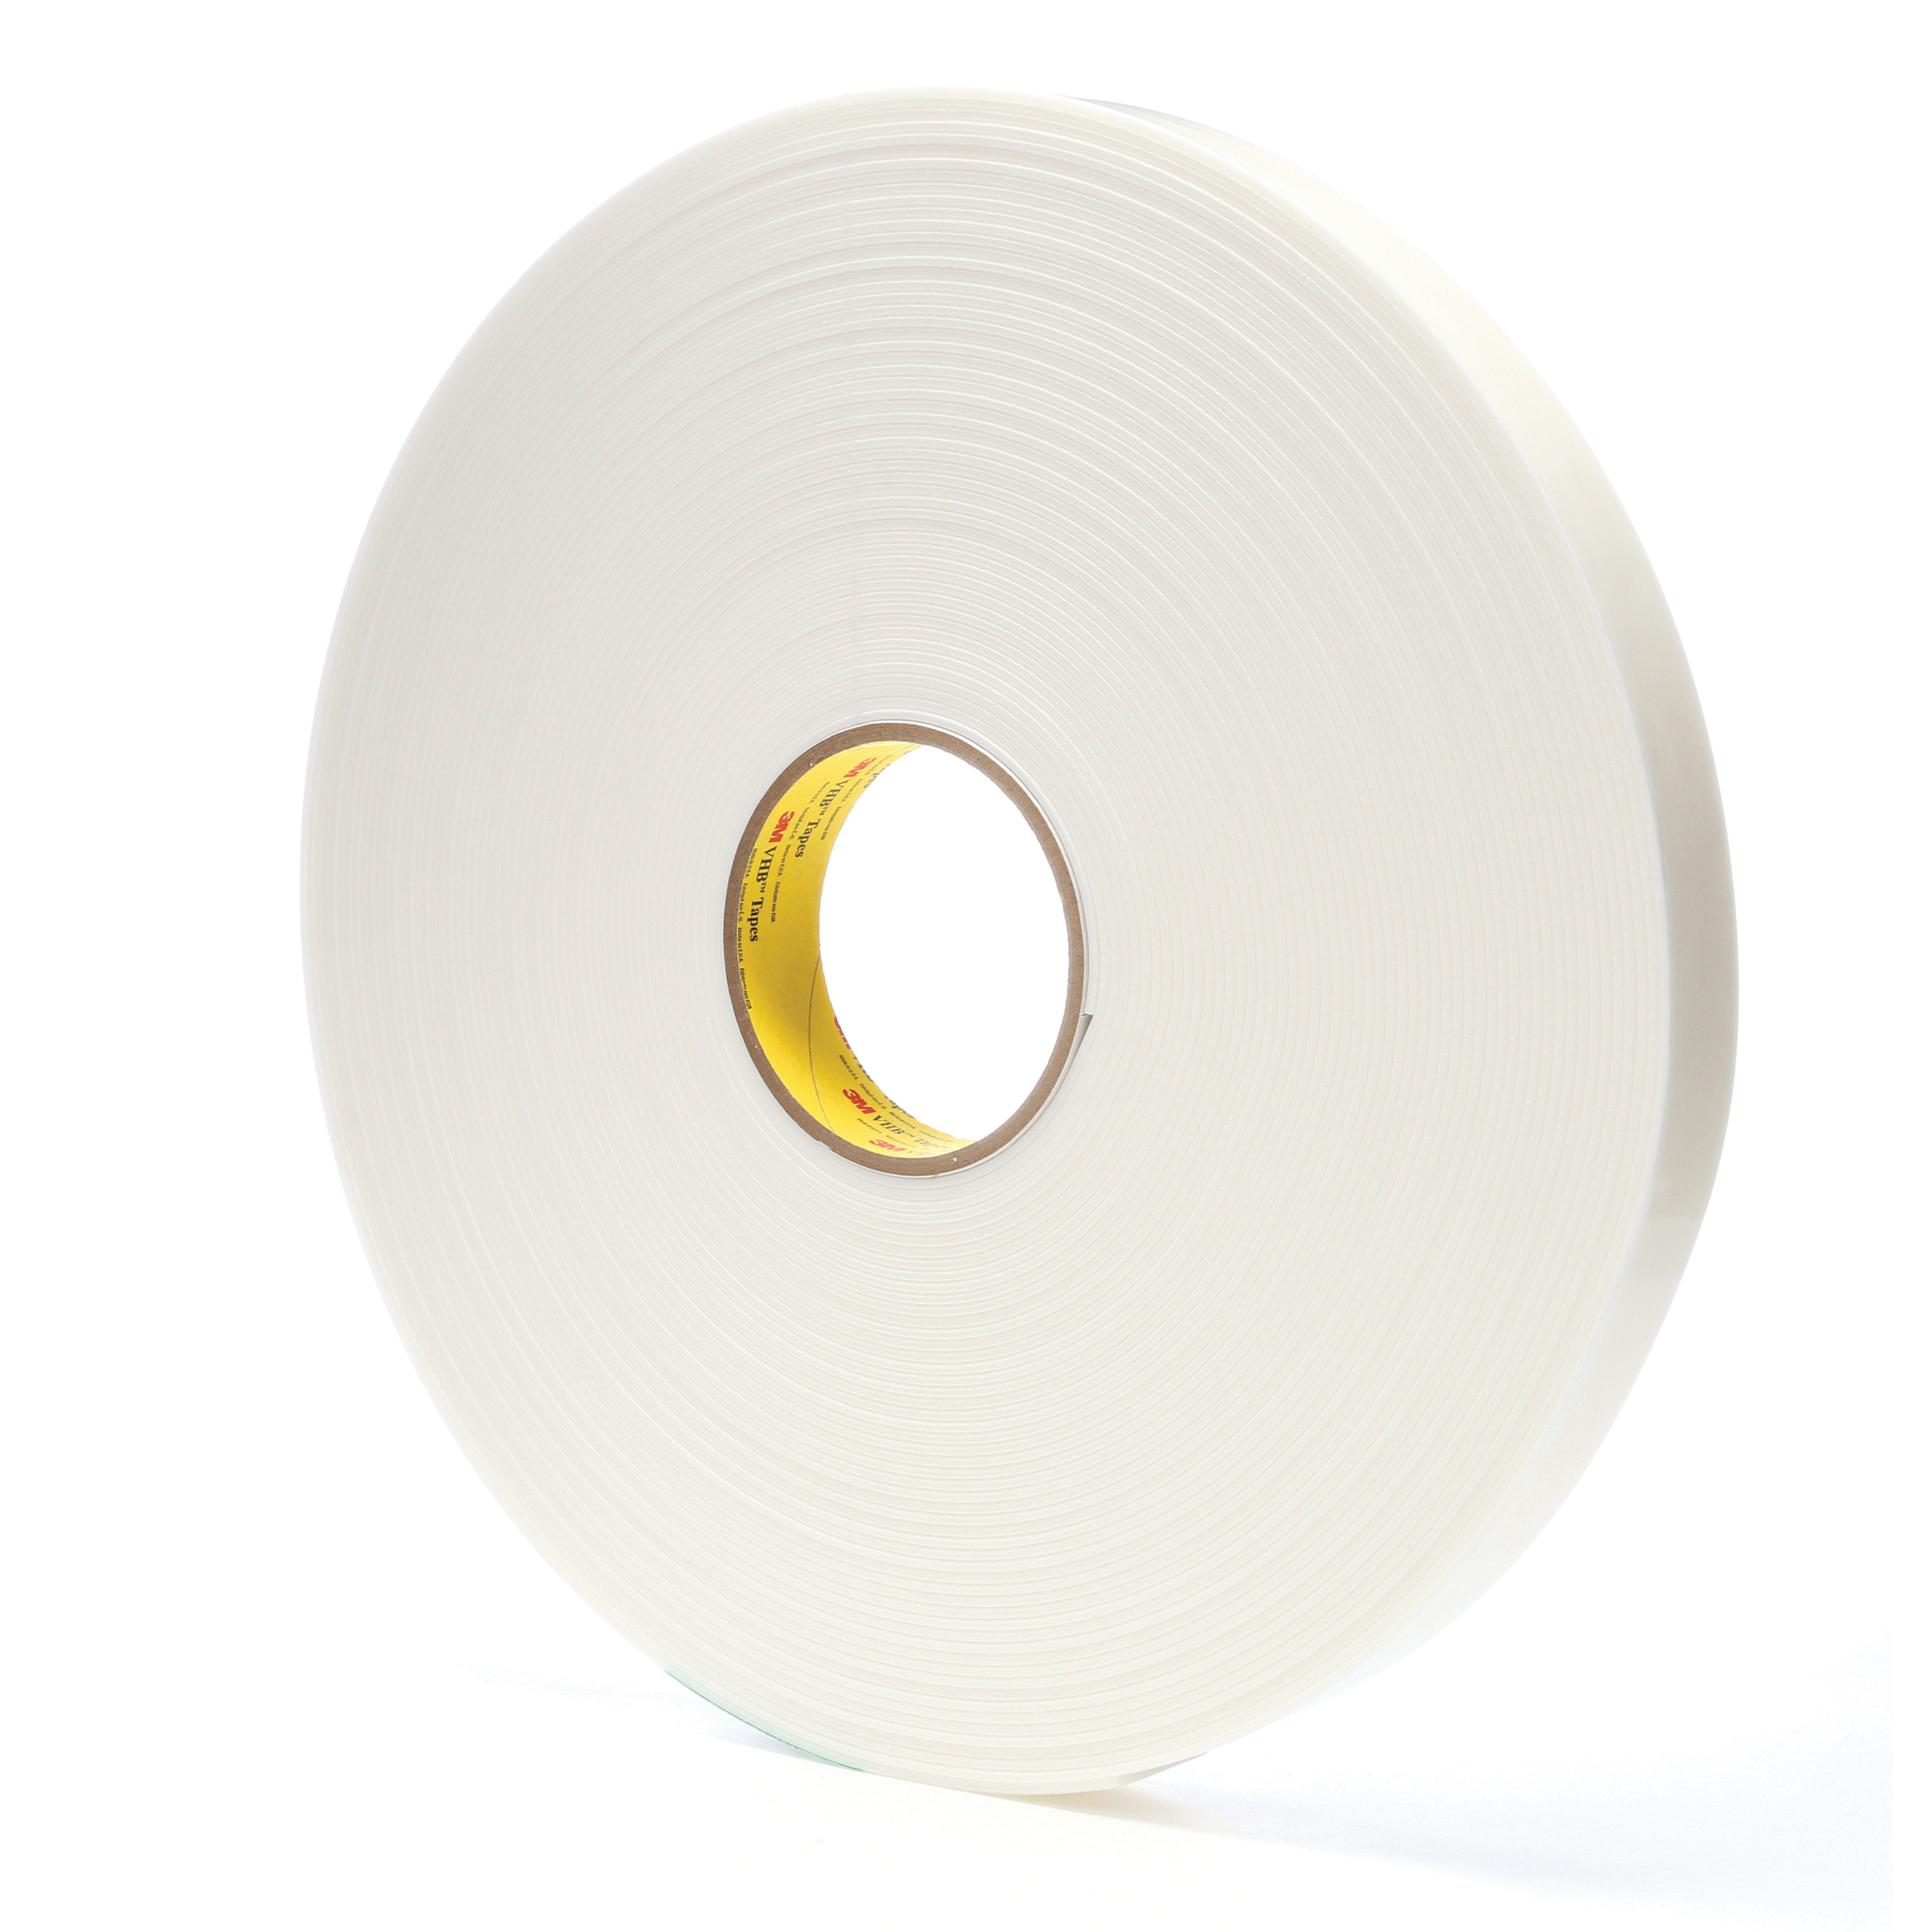 3M™ VHB™ 021200-67501 Pressure Sensitive Double Sided Bonding Tape, 36 yd L x 1 in W, 0.08 in THK, General Purpose Acrylic Adhesive, Acrylic Foam Backing, White